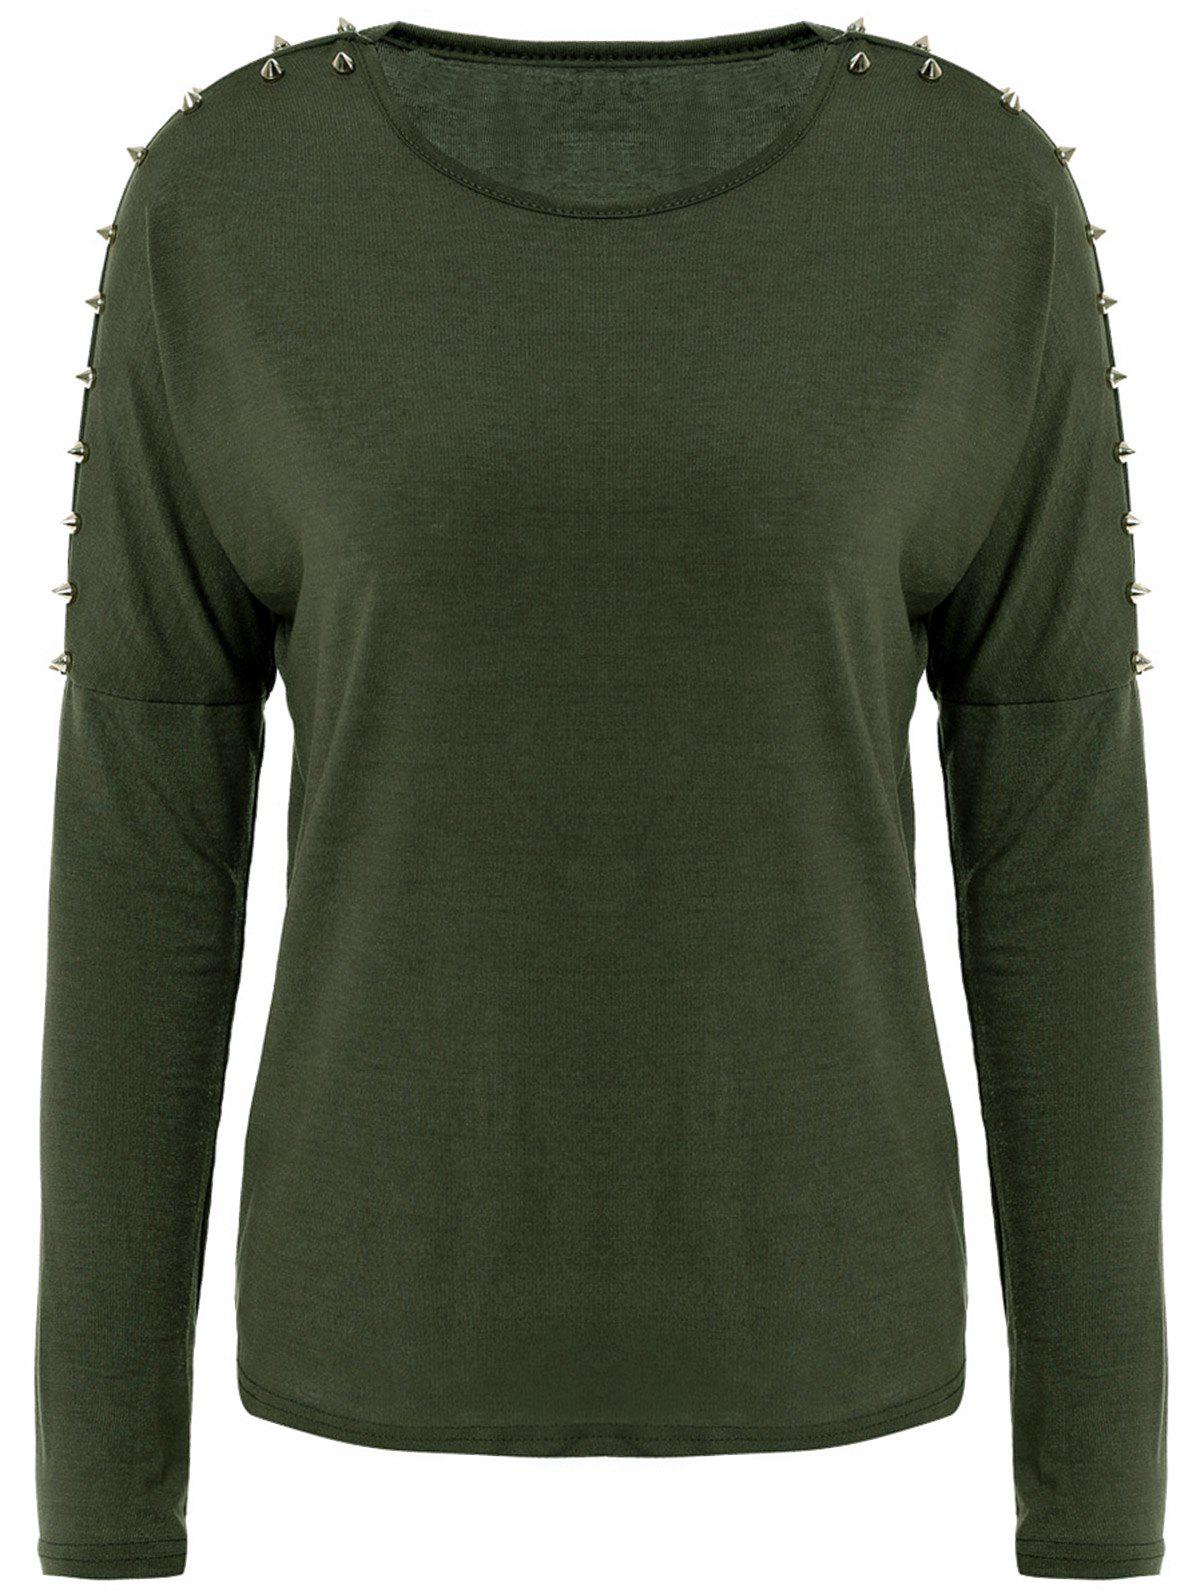 All-Match Solid Color Scoop Collar Rivet Shoulder Long Sleeves Women's T-shirt - GREEN ONE SIZE